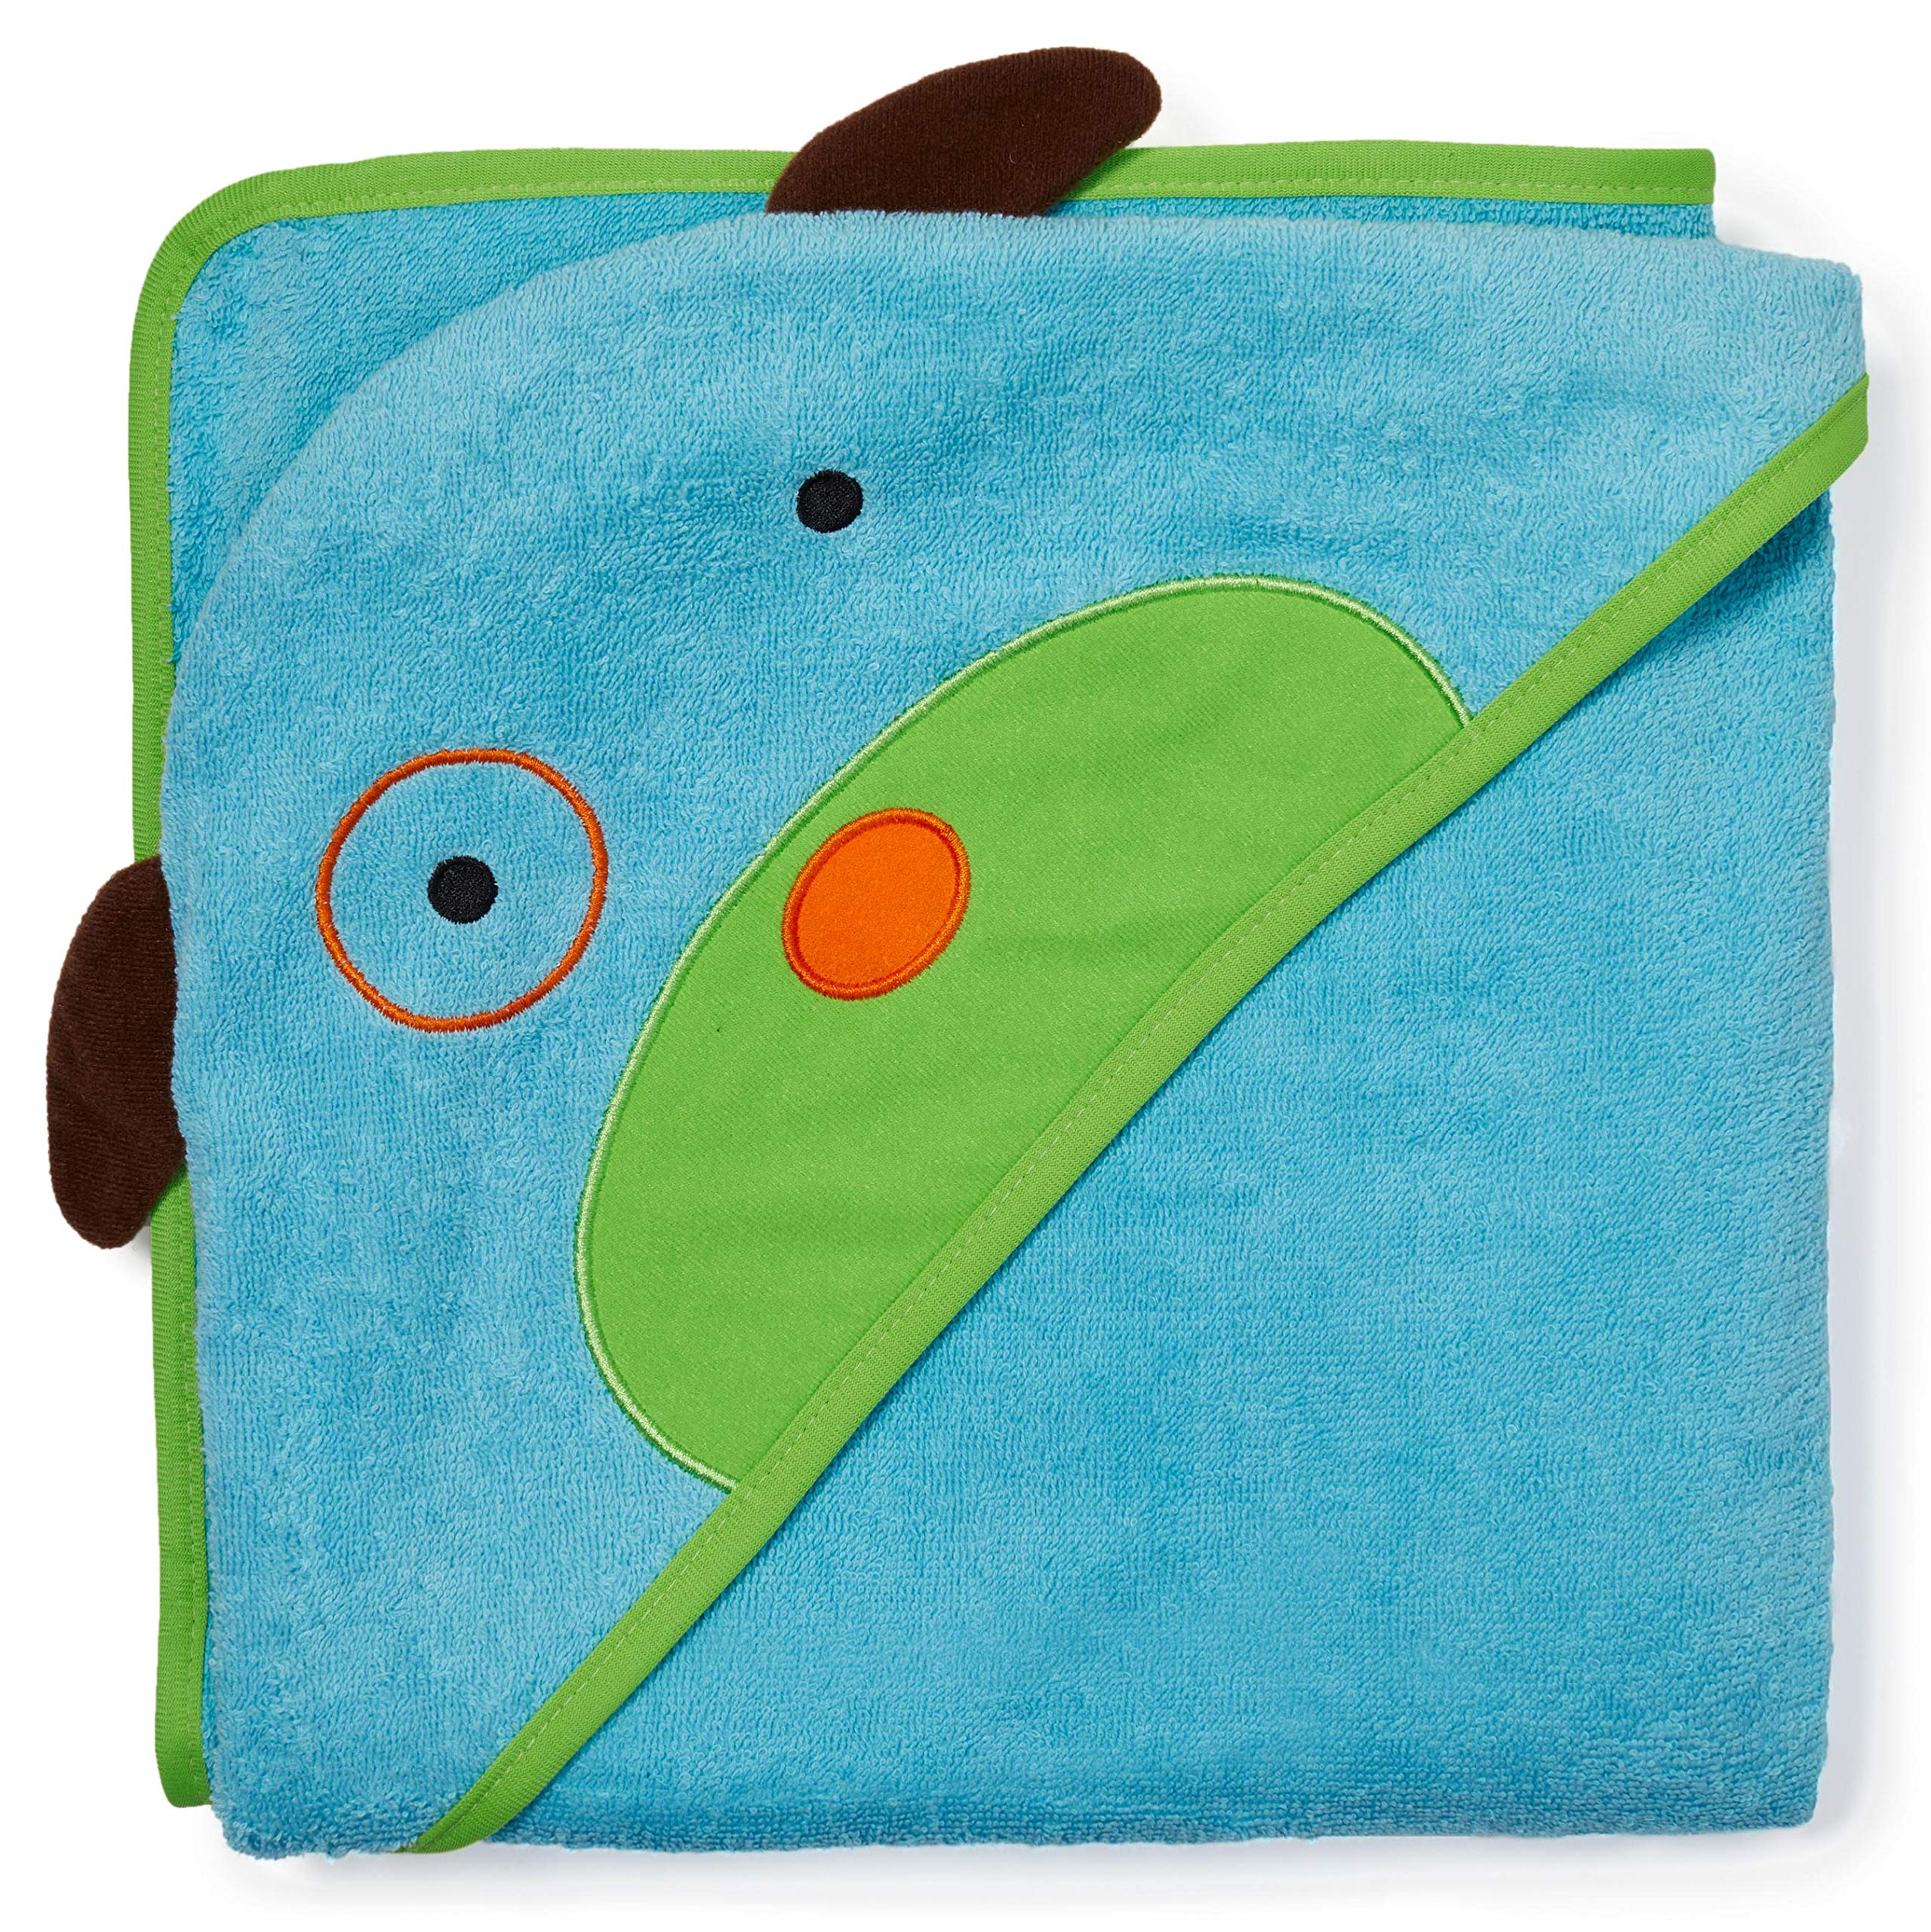 Skip Hop Baby Hooded Towel, 100% Cotton French Terry, Dog by Skip Hop